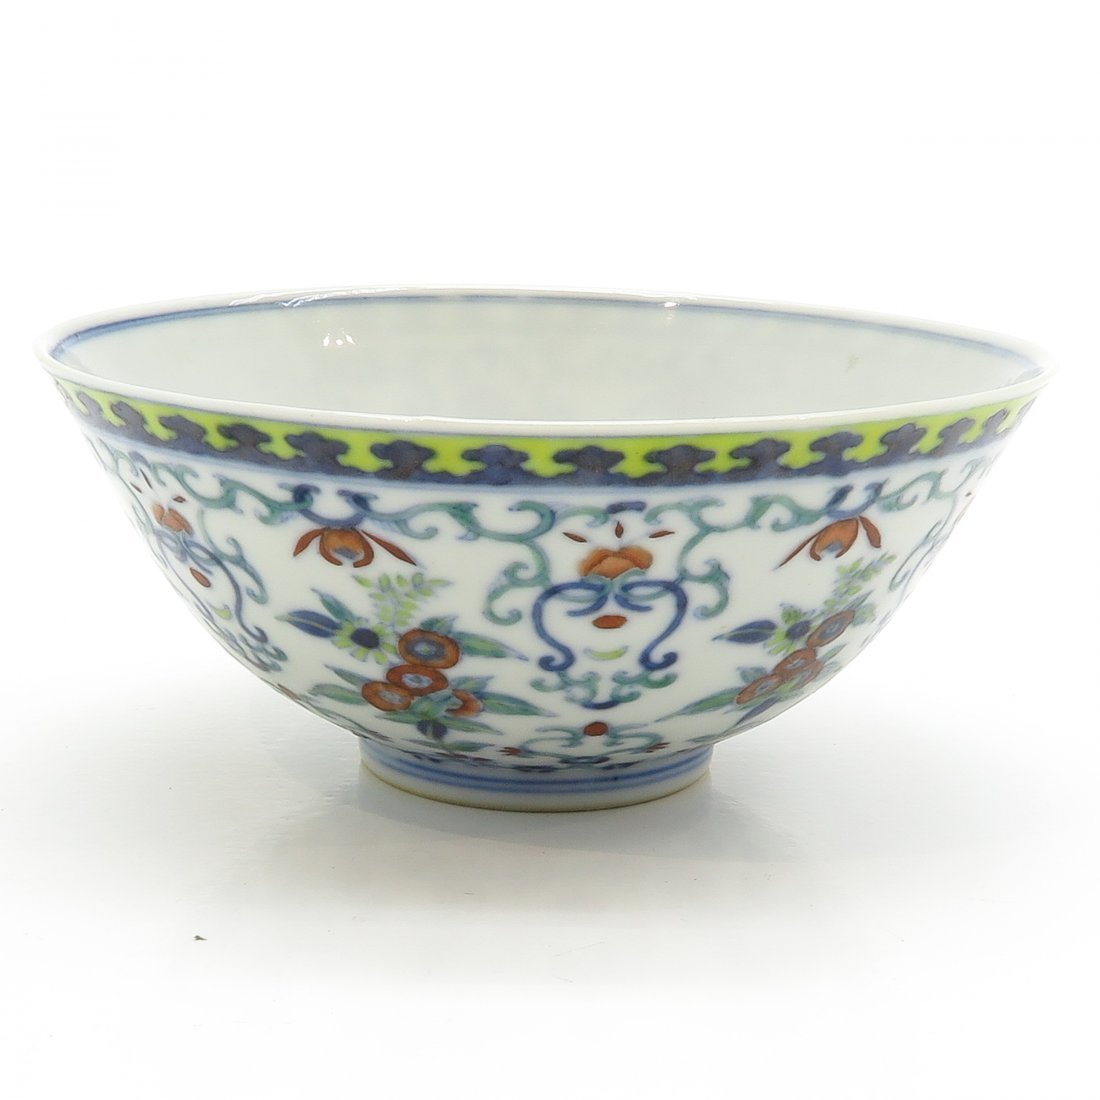 18th / 19th Century Wucai Decor Bowl